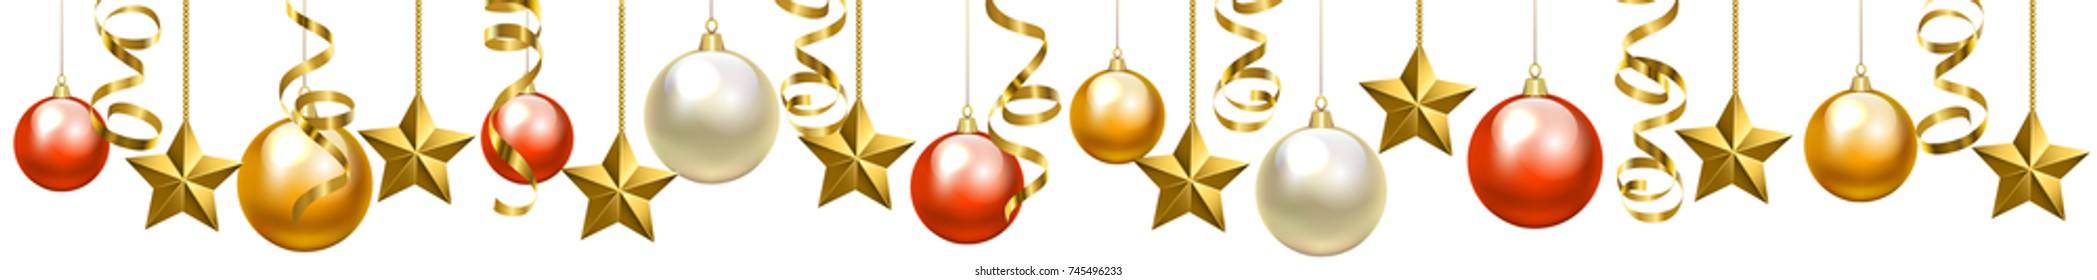 Christmas glass baubles and serpentine streamers, border isolated on white background